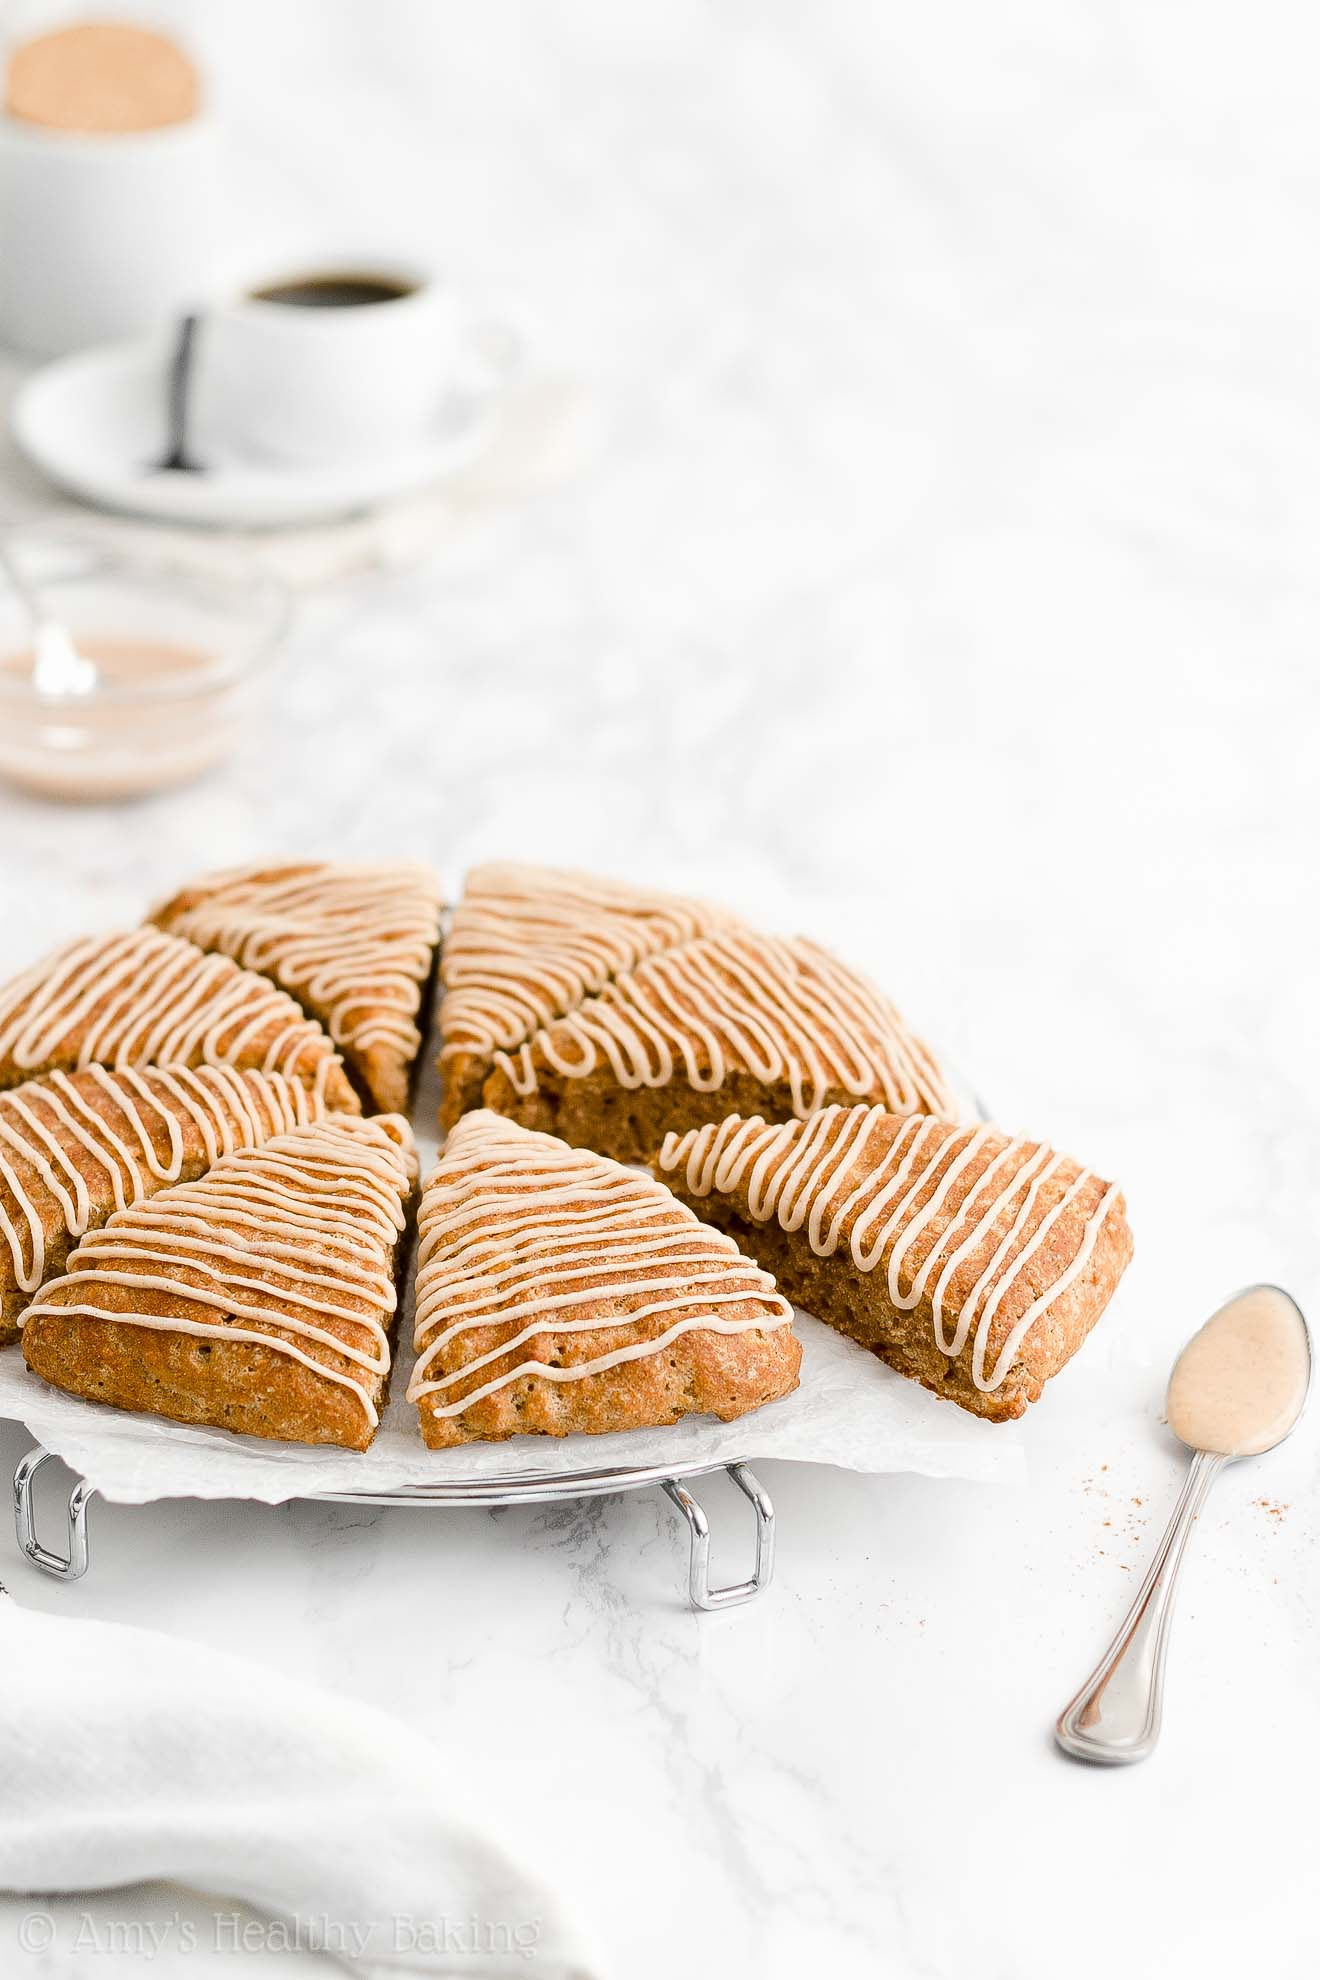 BEST EVER Easy Healthy No Egg Dairy Free Low Calorie Cinnamon Scones